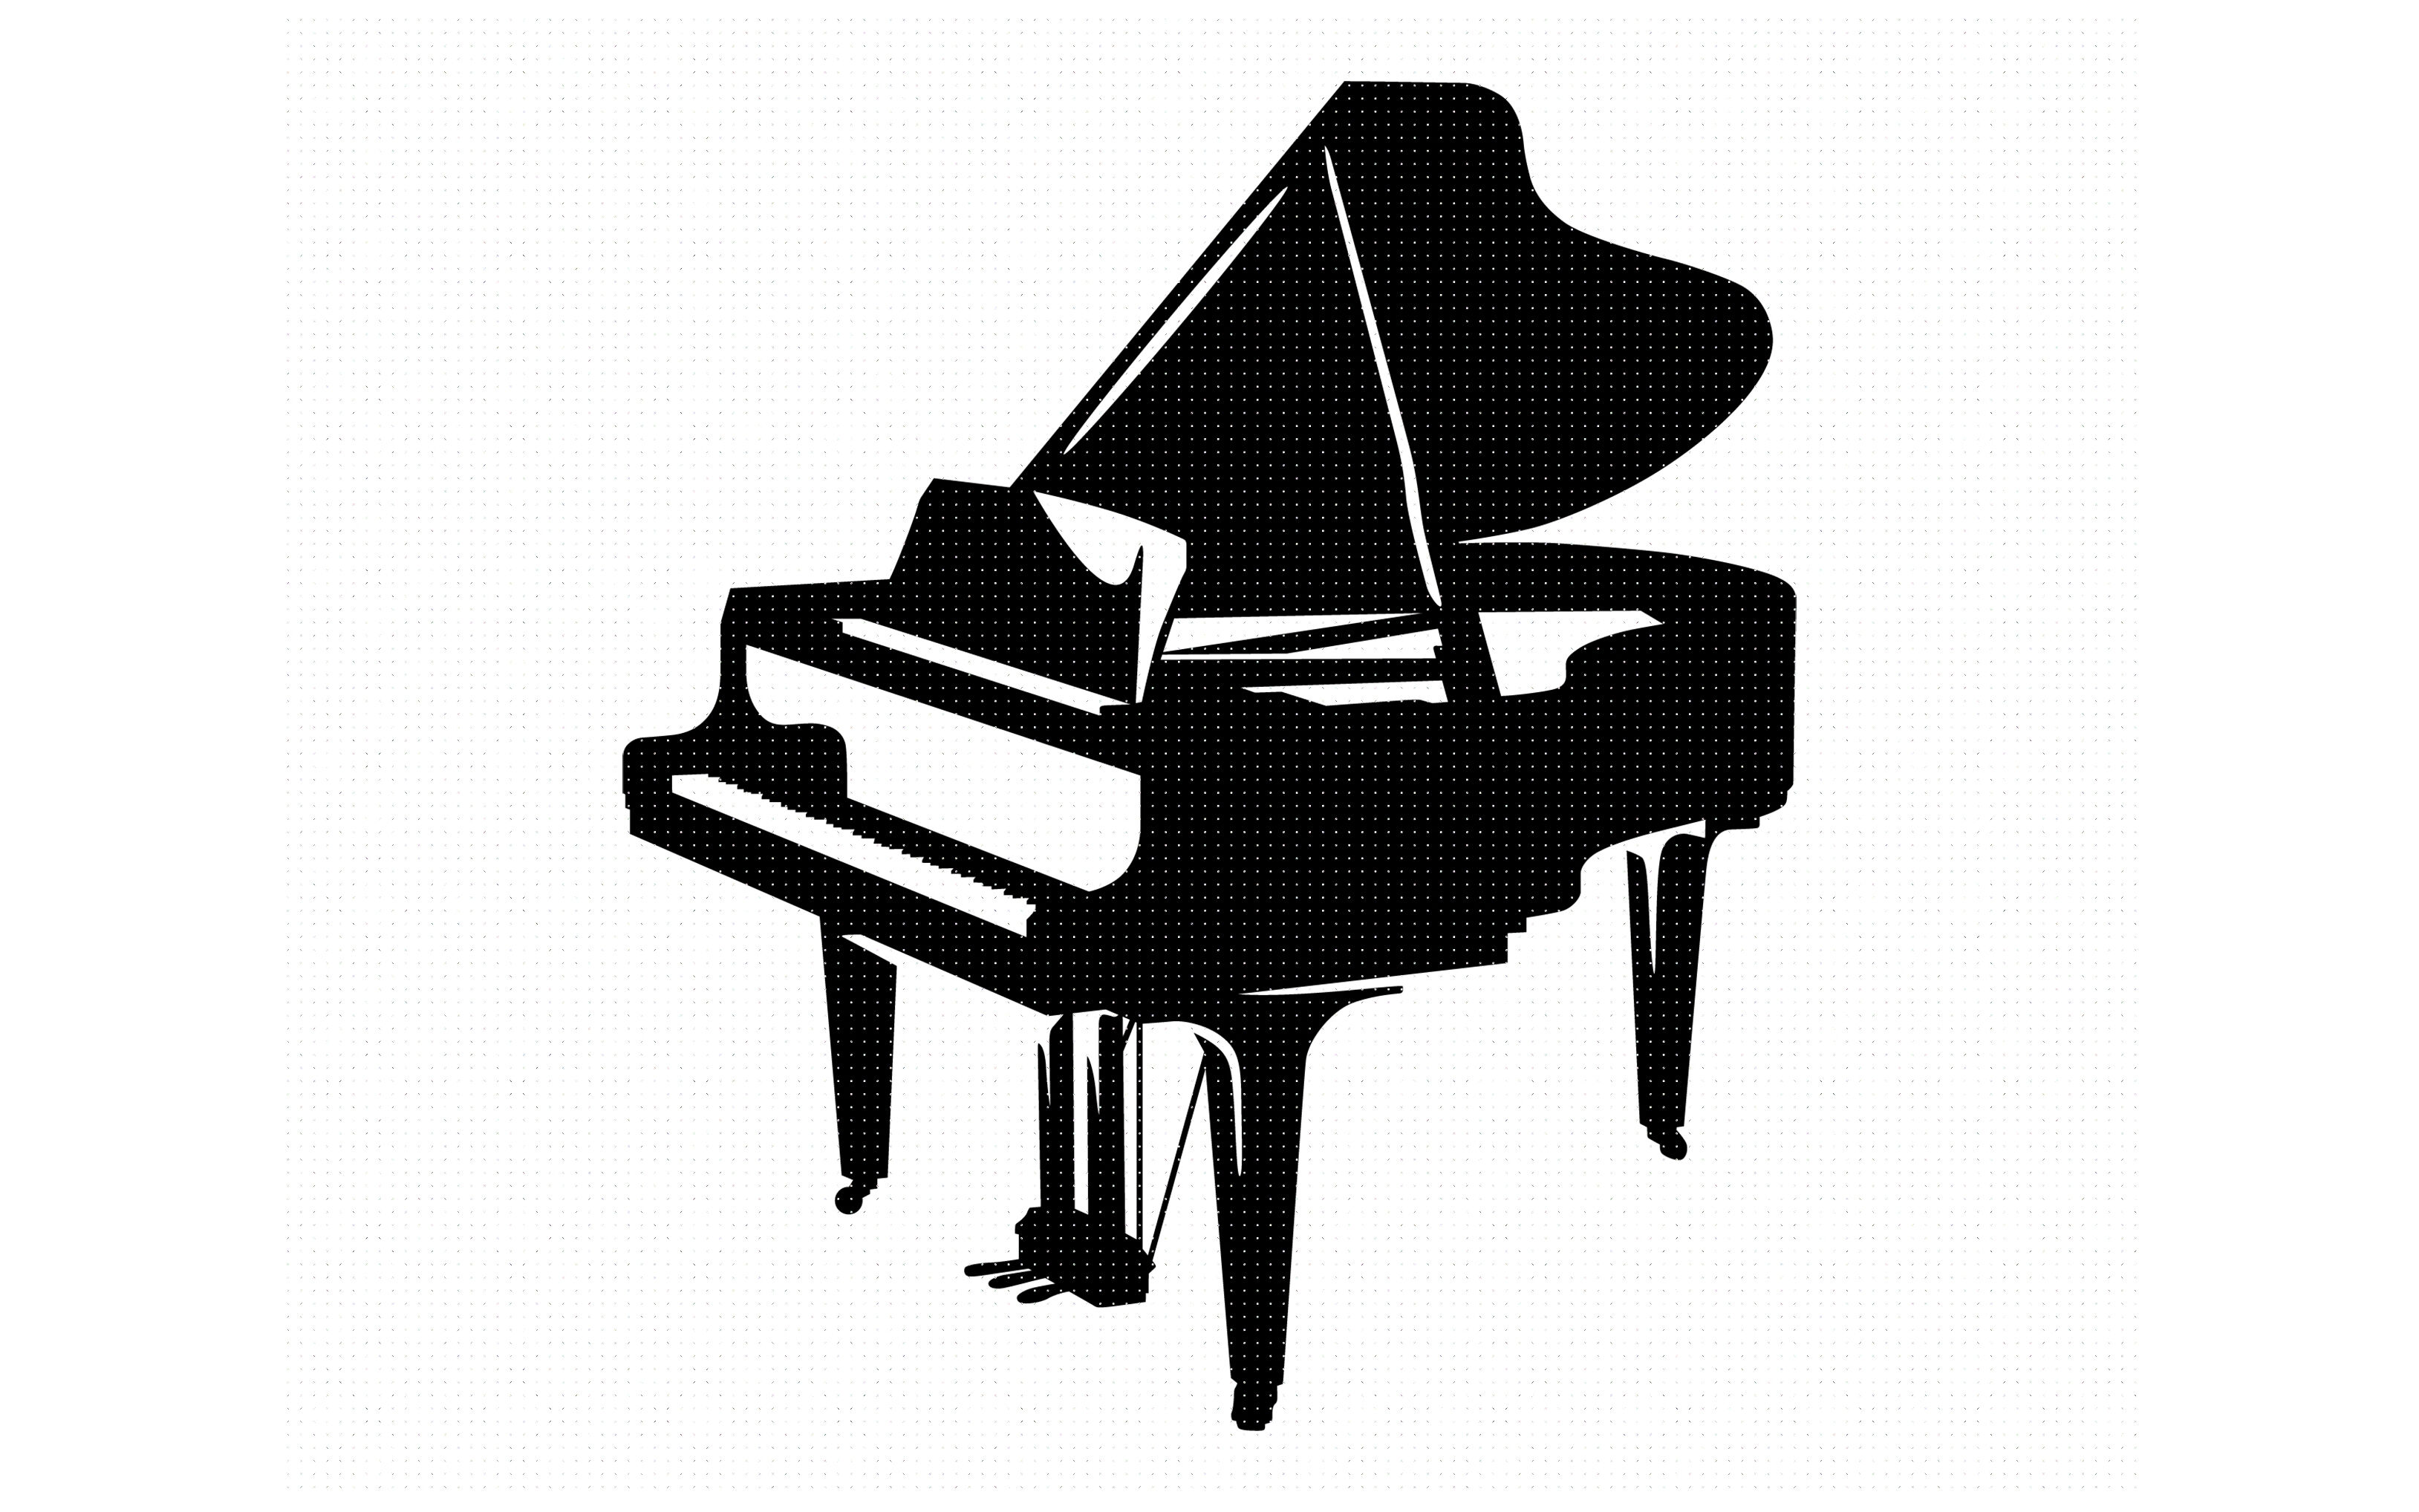 Grand Piano Svg Dxf Png Eps Cricut Silhouette Cut File Clipart By Crafteroks Thehungryjpeg Com